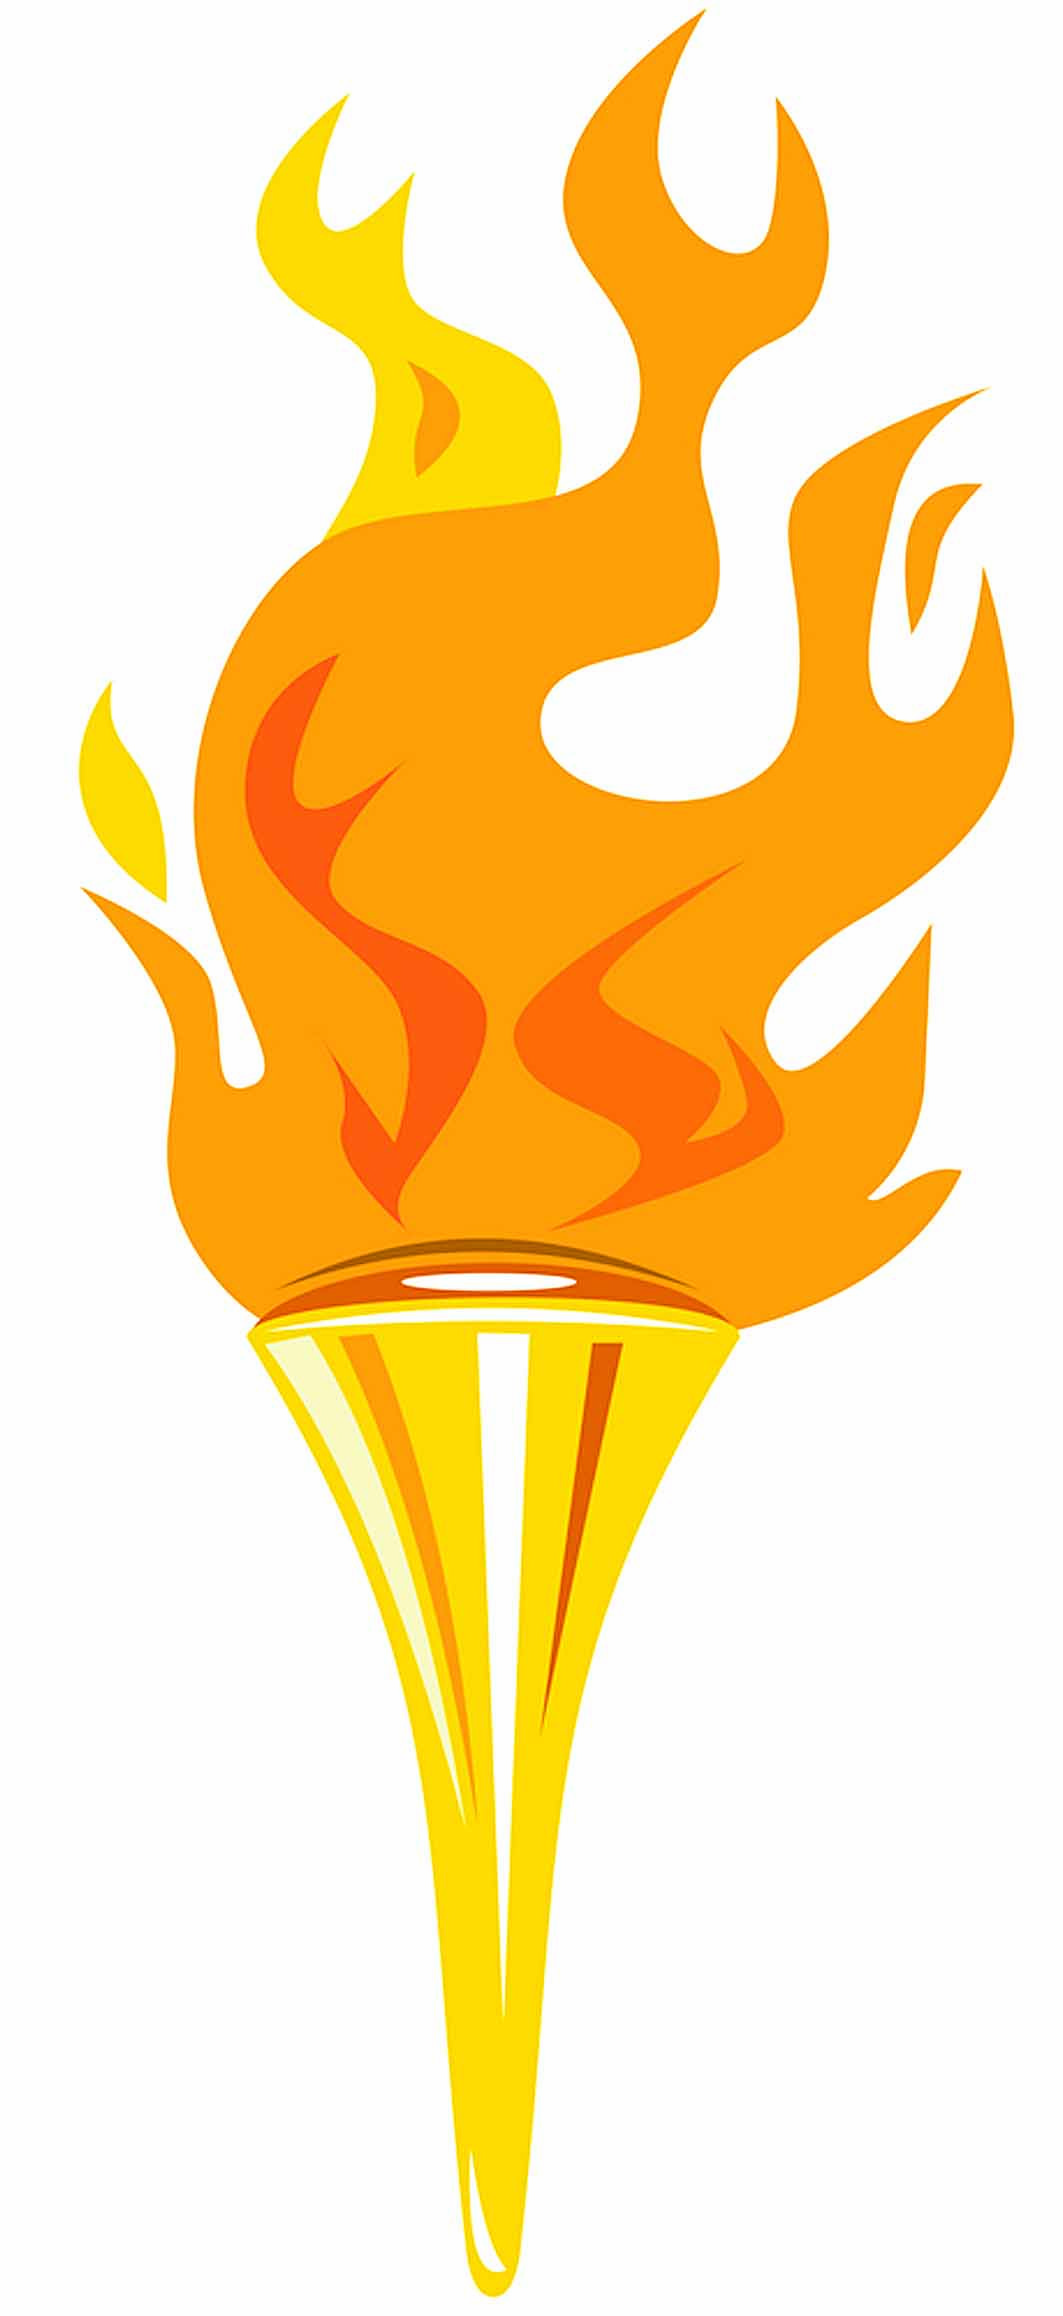 olympic-torch.jpg 1,063×2,316 pixels❤ | ViralJunky | Pinterest ... for Olympic Torch Fire  146hul